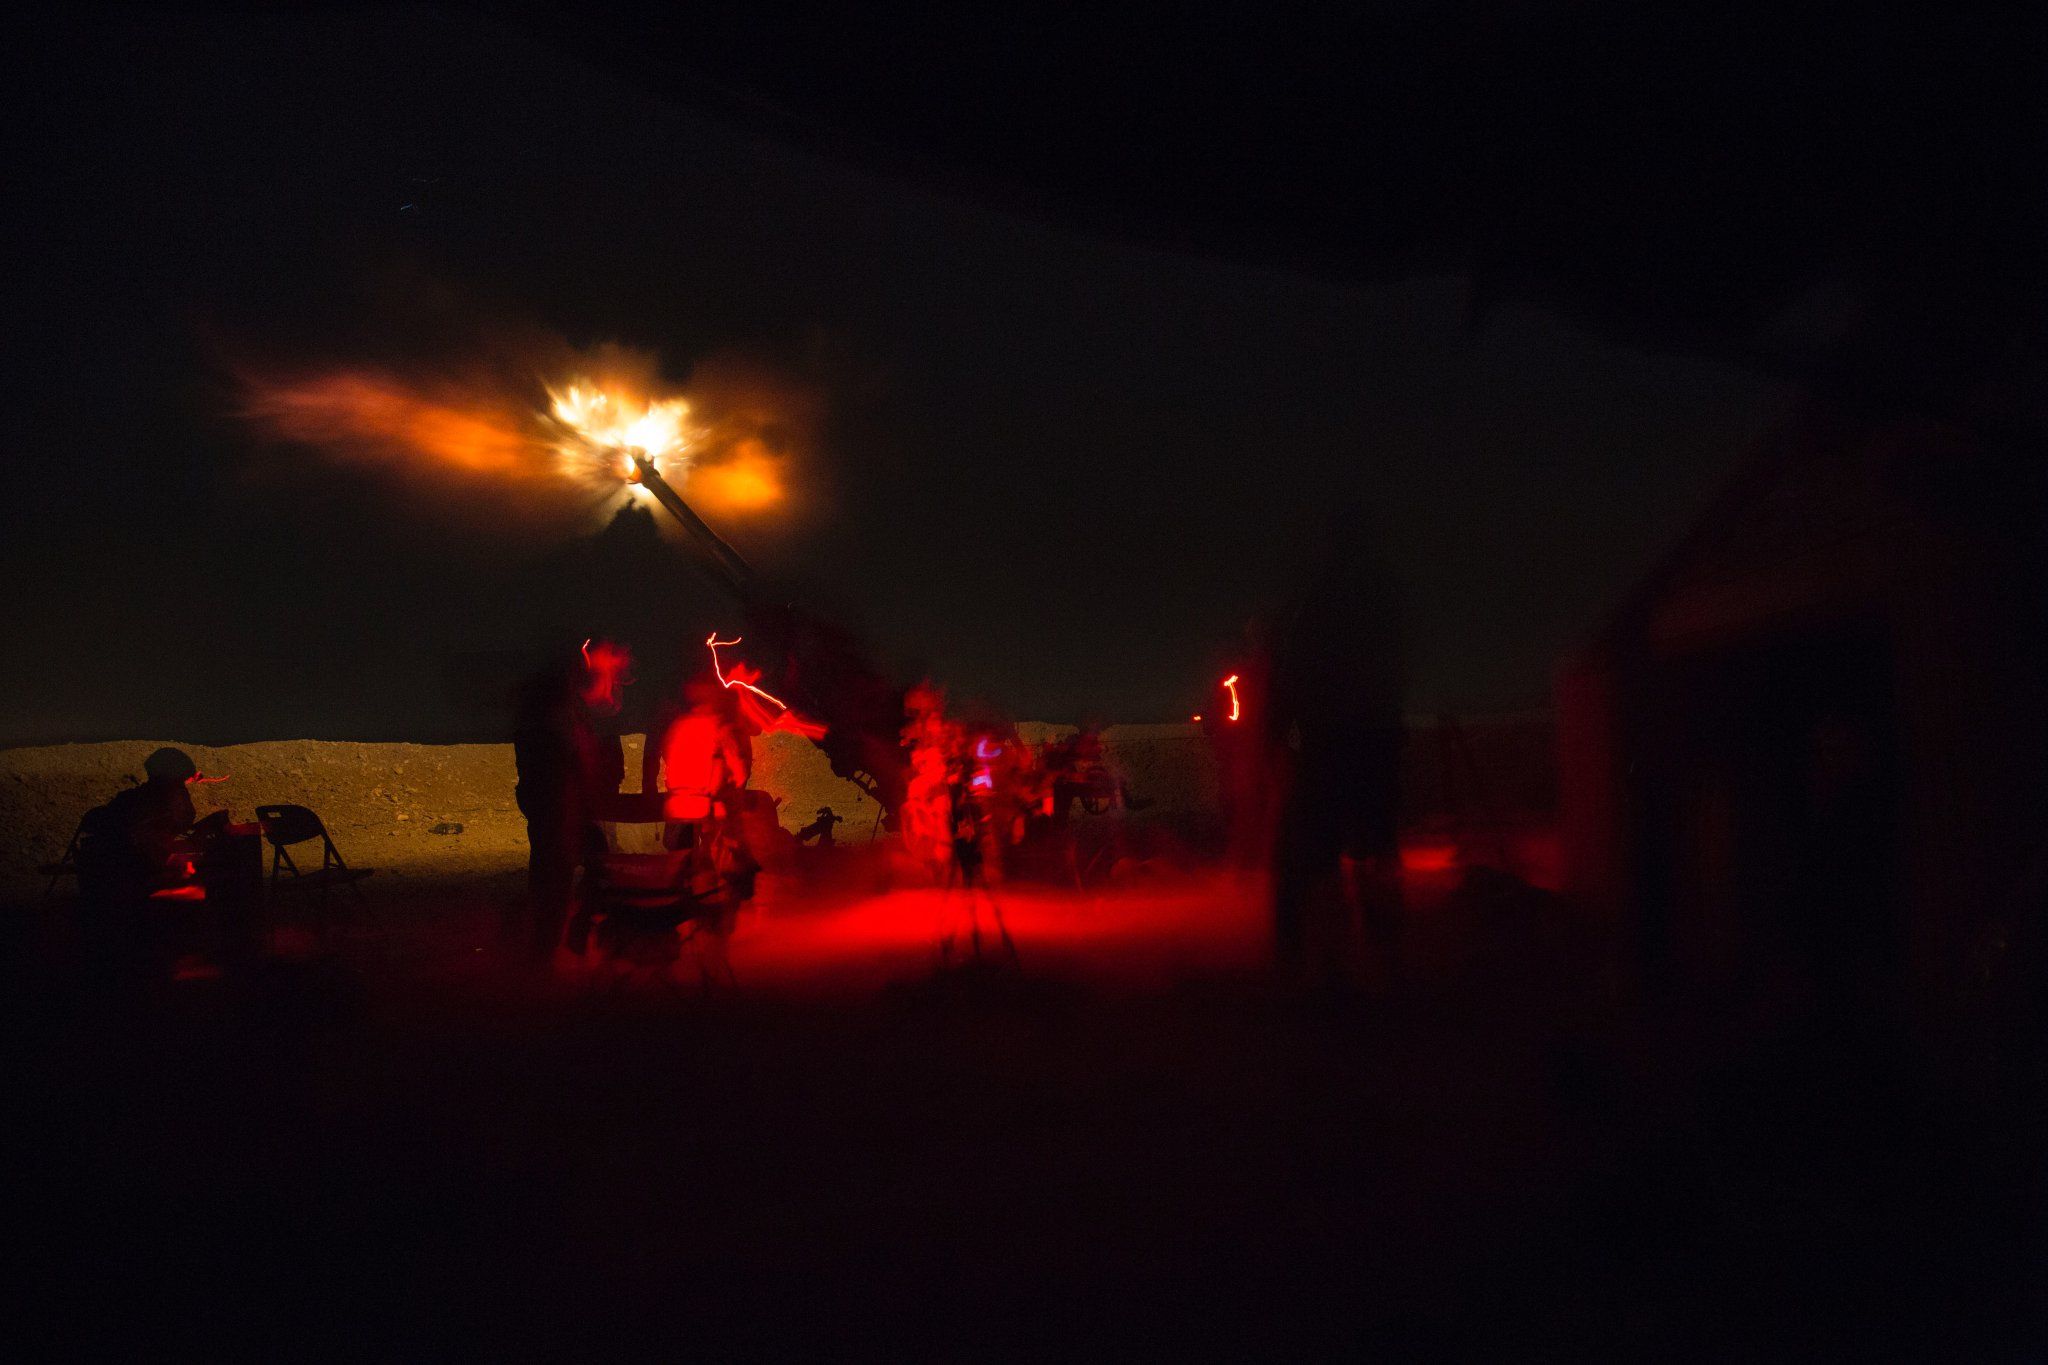 A picture of a recent night time artillery engagement from Kara Soar base, supporting Iraqi troops (via US army)